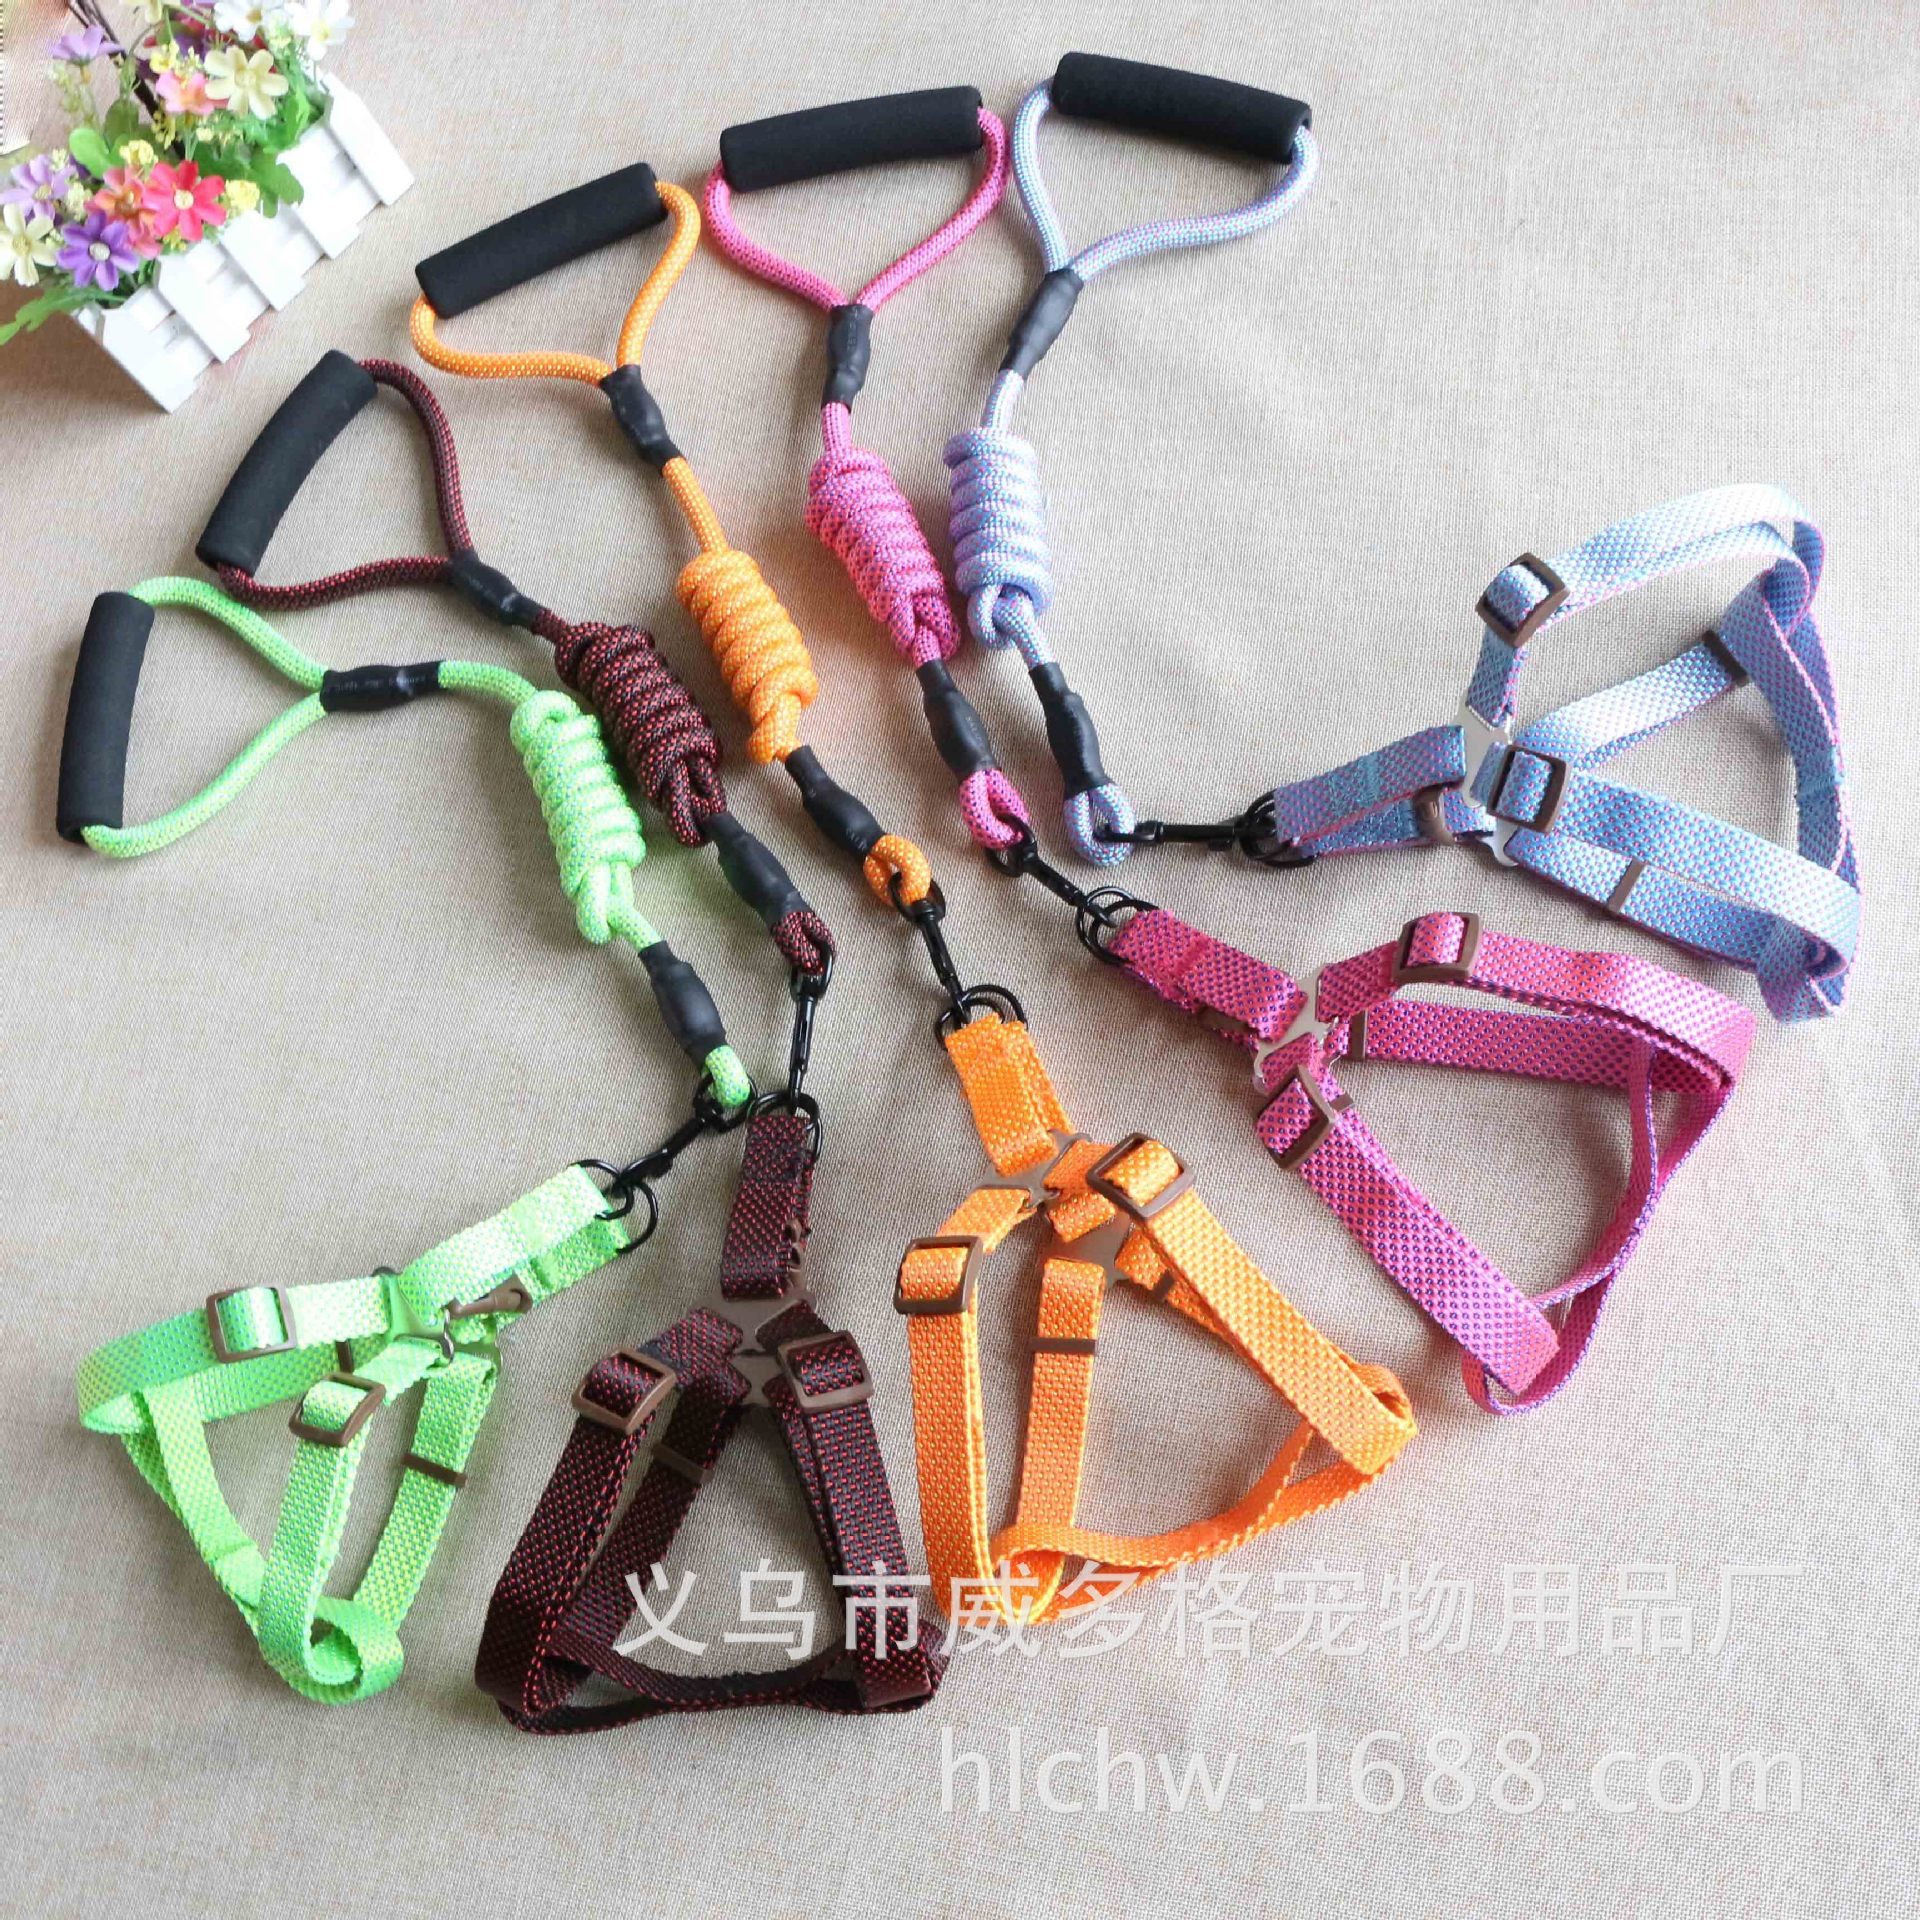 Sleeves Pet Supplies Wholesale New Style Dog Hand Holding Rope Nylon Hand Guard Round Rope Foam Handle Pet Traction Rope